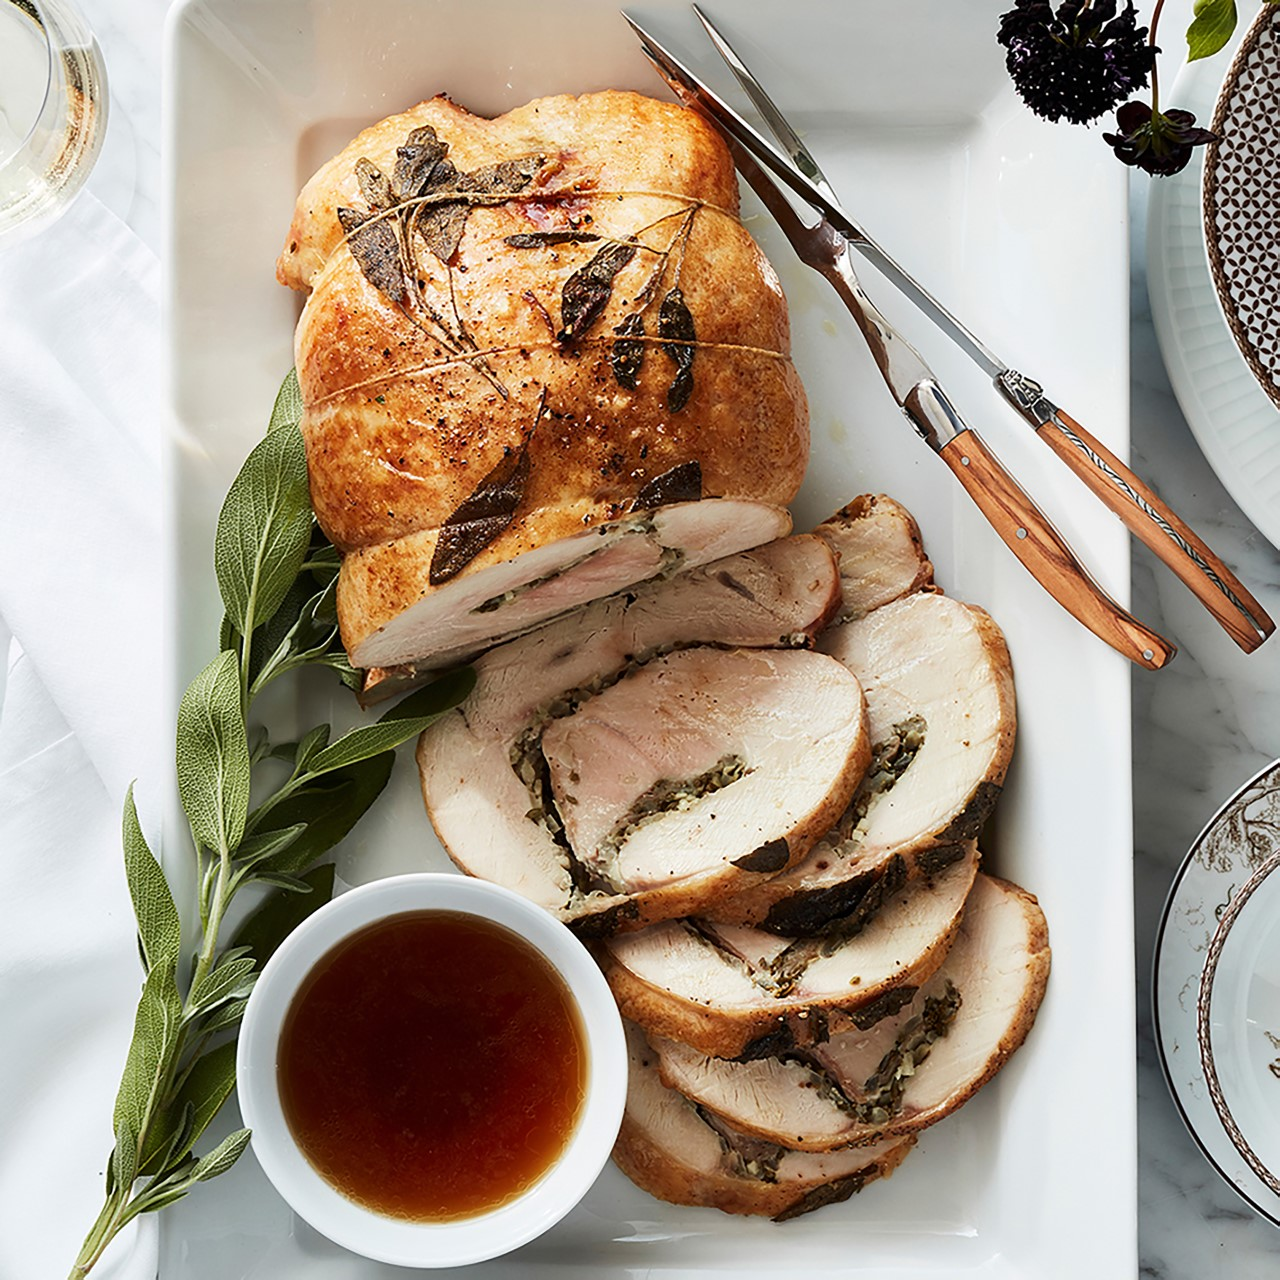 Turkey roulade and gravy on white plate